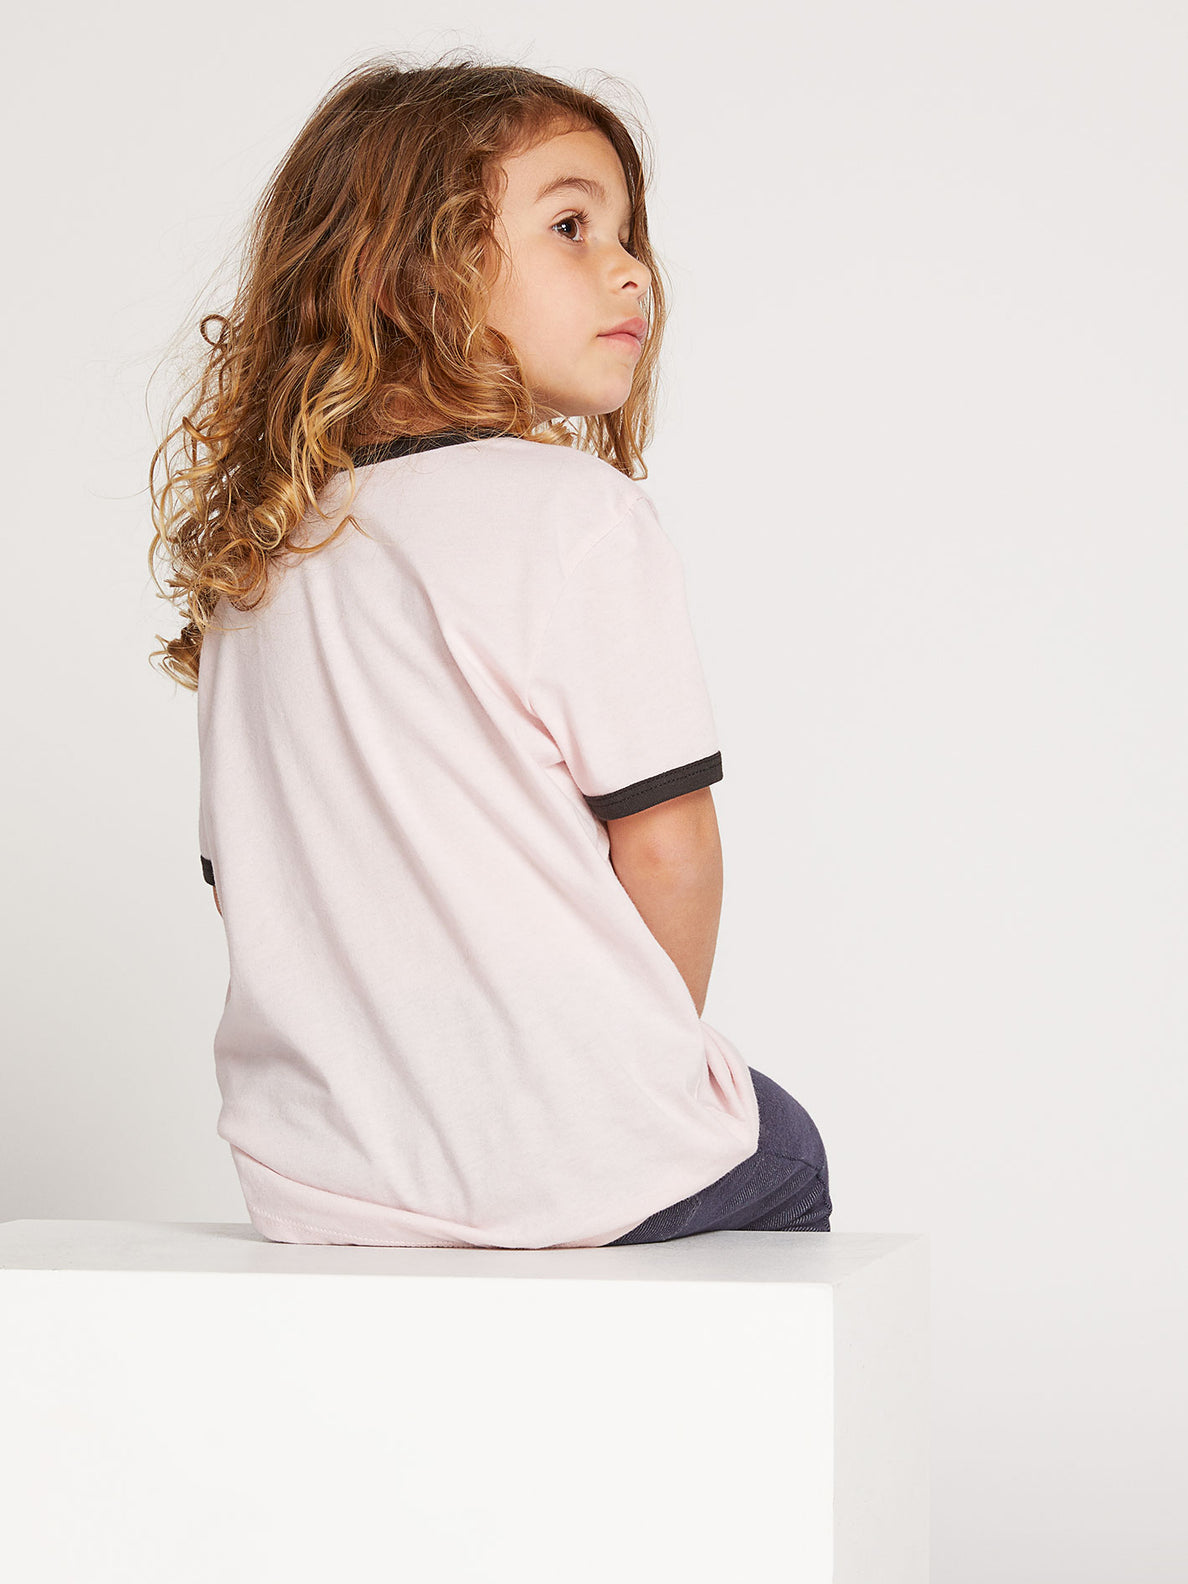 Little Girls Hey Slims Tee In Blush Pink, Second Alternate View